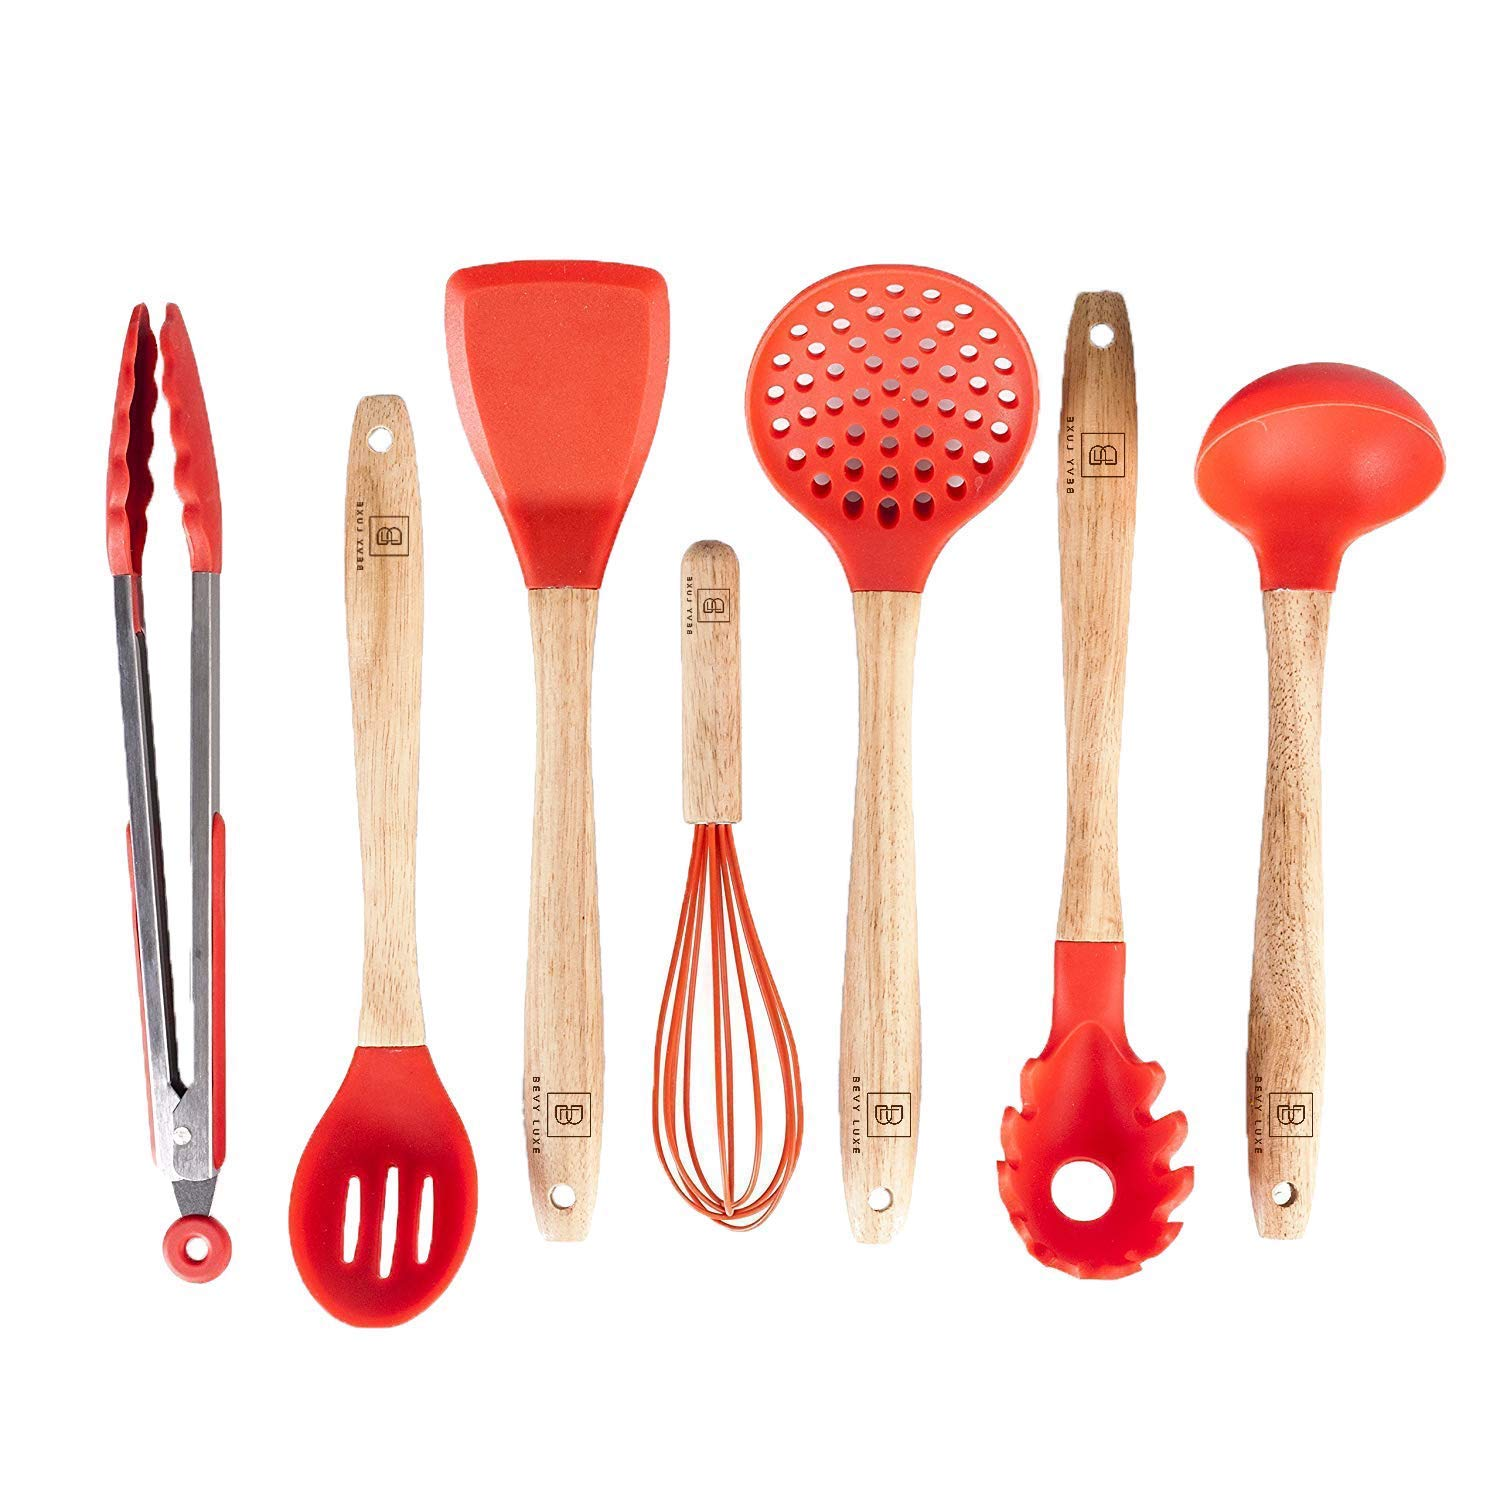 Silicone Kitchen Utensils: Silicone Cooking Utensils With Wooden Handle